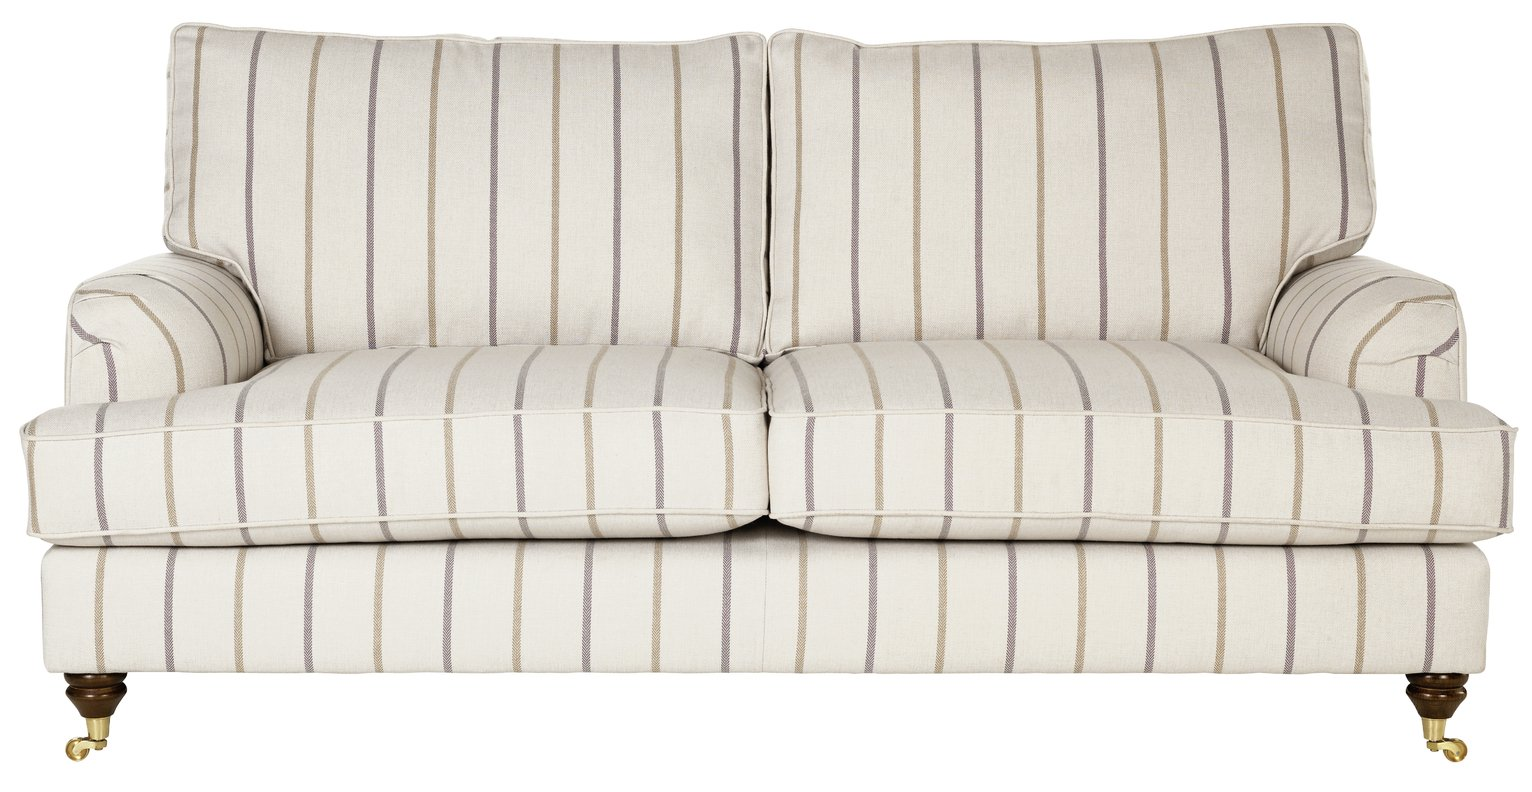 Image of Heart of House Abberton 3 Seater Sofa - Natural Stripe